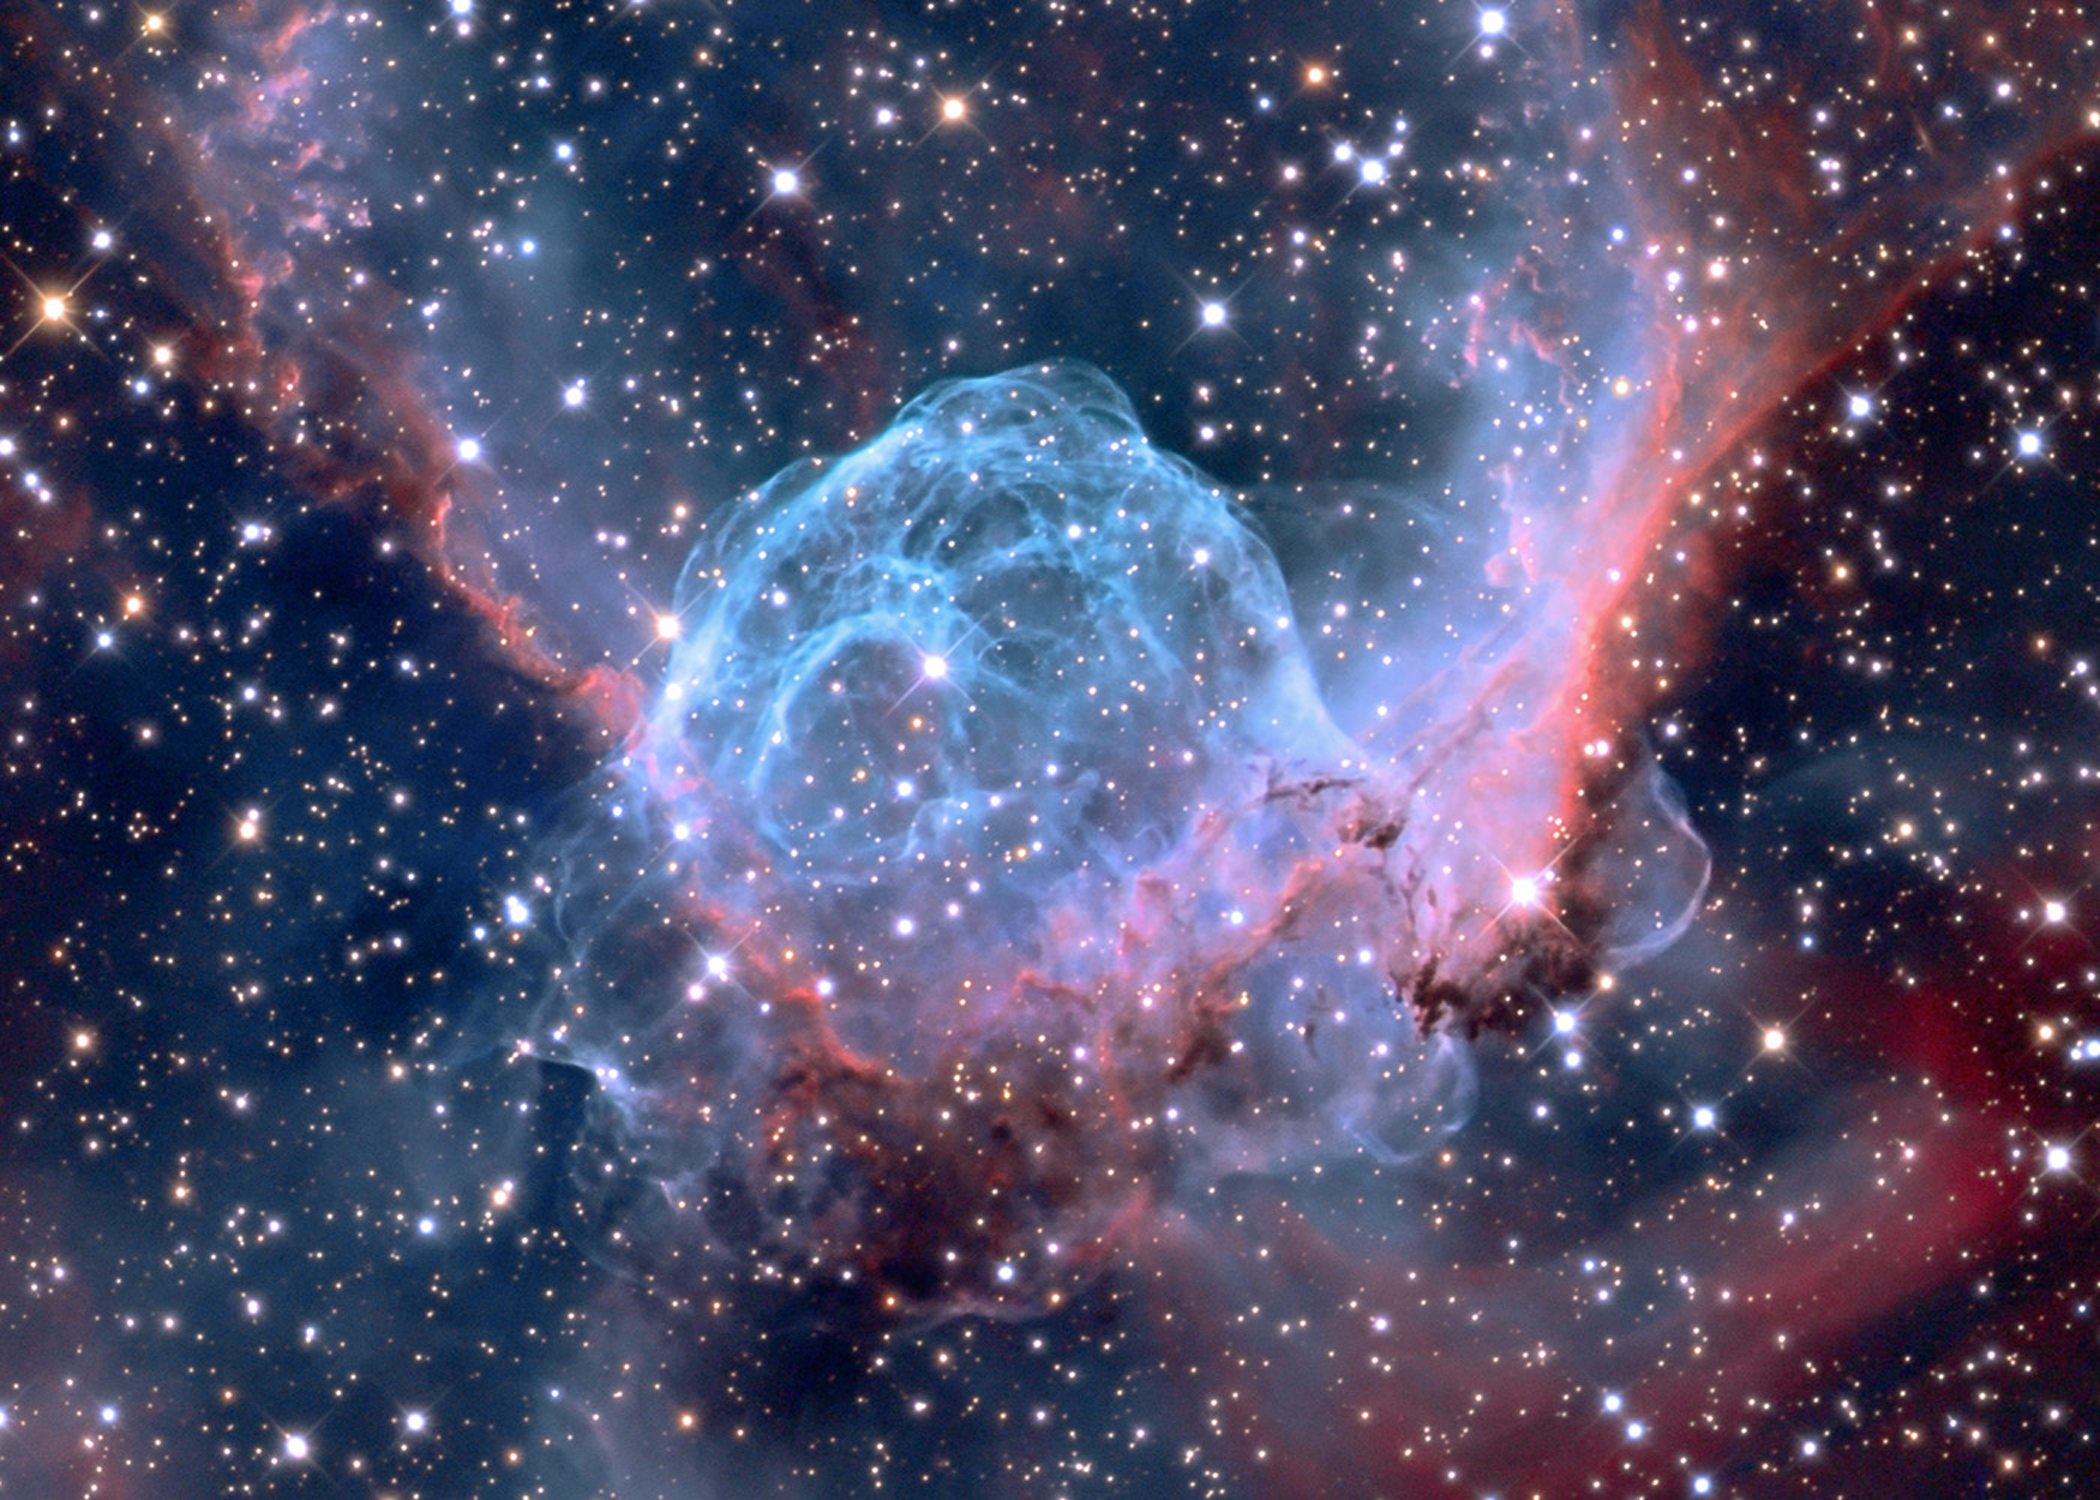 This nebula named  Thor's Helmet  is powered by a central  Wolf Rayet  star whose explosive tantrums blow huge bubbles of gas and make them glow like neon. This star is easily 20 times the mass of the Sun and located 15,000 light years away. Eventually the star's instability will lead it to explode as a supernova.  The photo was captured at the Mount Lemmon SkyCenter in Arizona and released on Jan. 3, 2015.